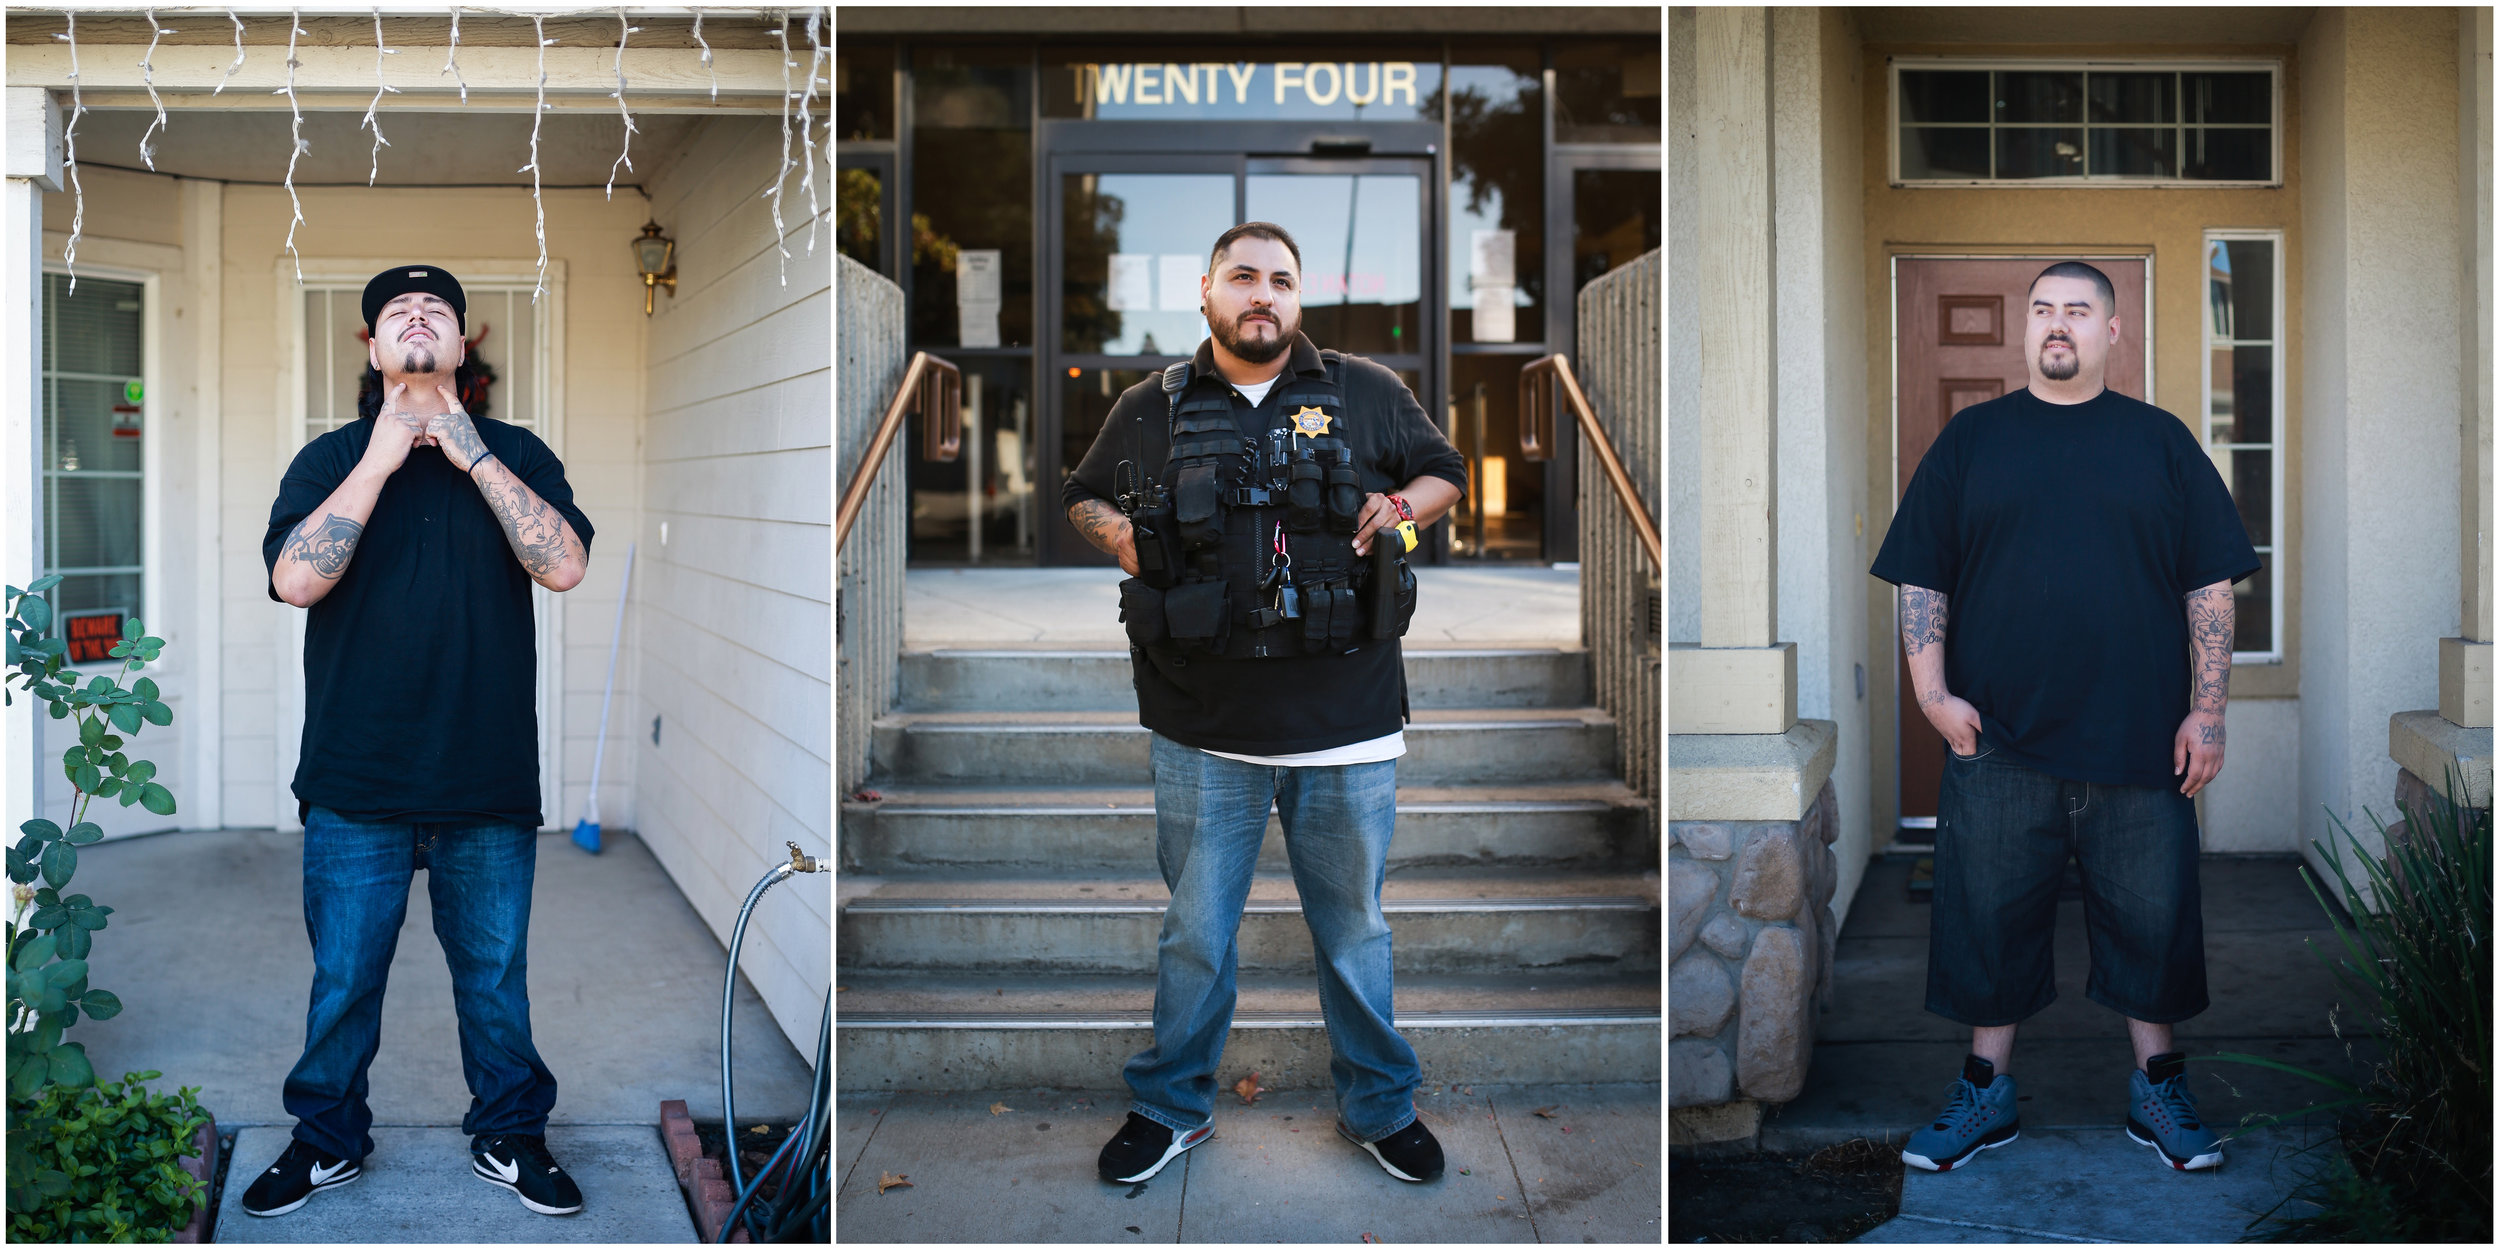 Chris Flores, Joaquin County Probation Officer Miguel Avila, and Nicco Cisneros for Buzzfeed News